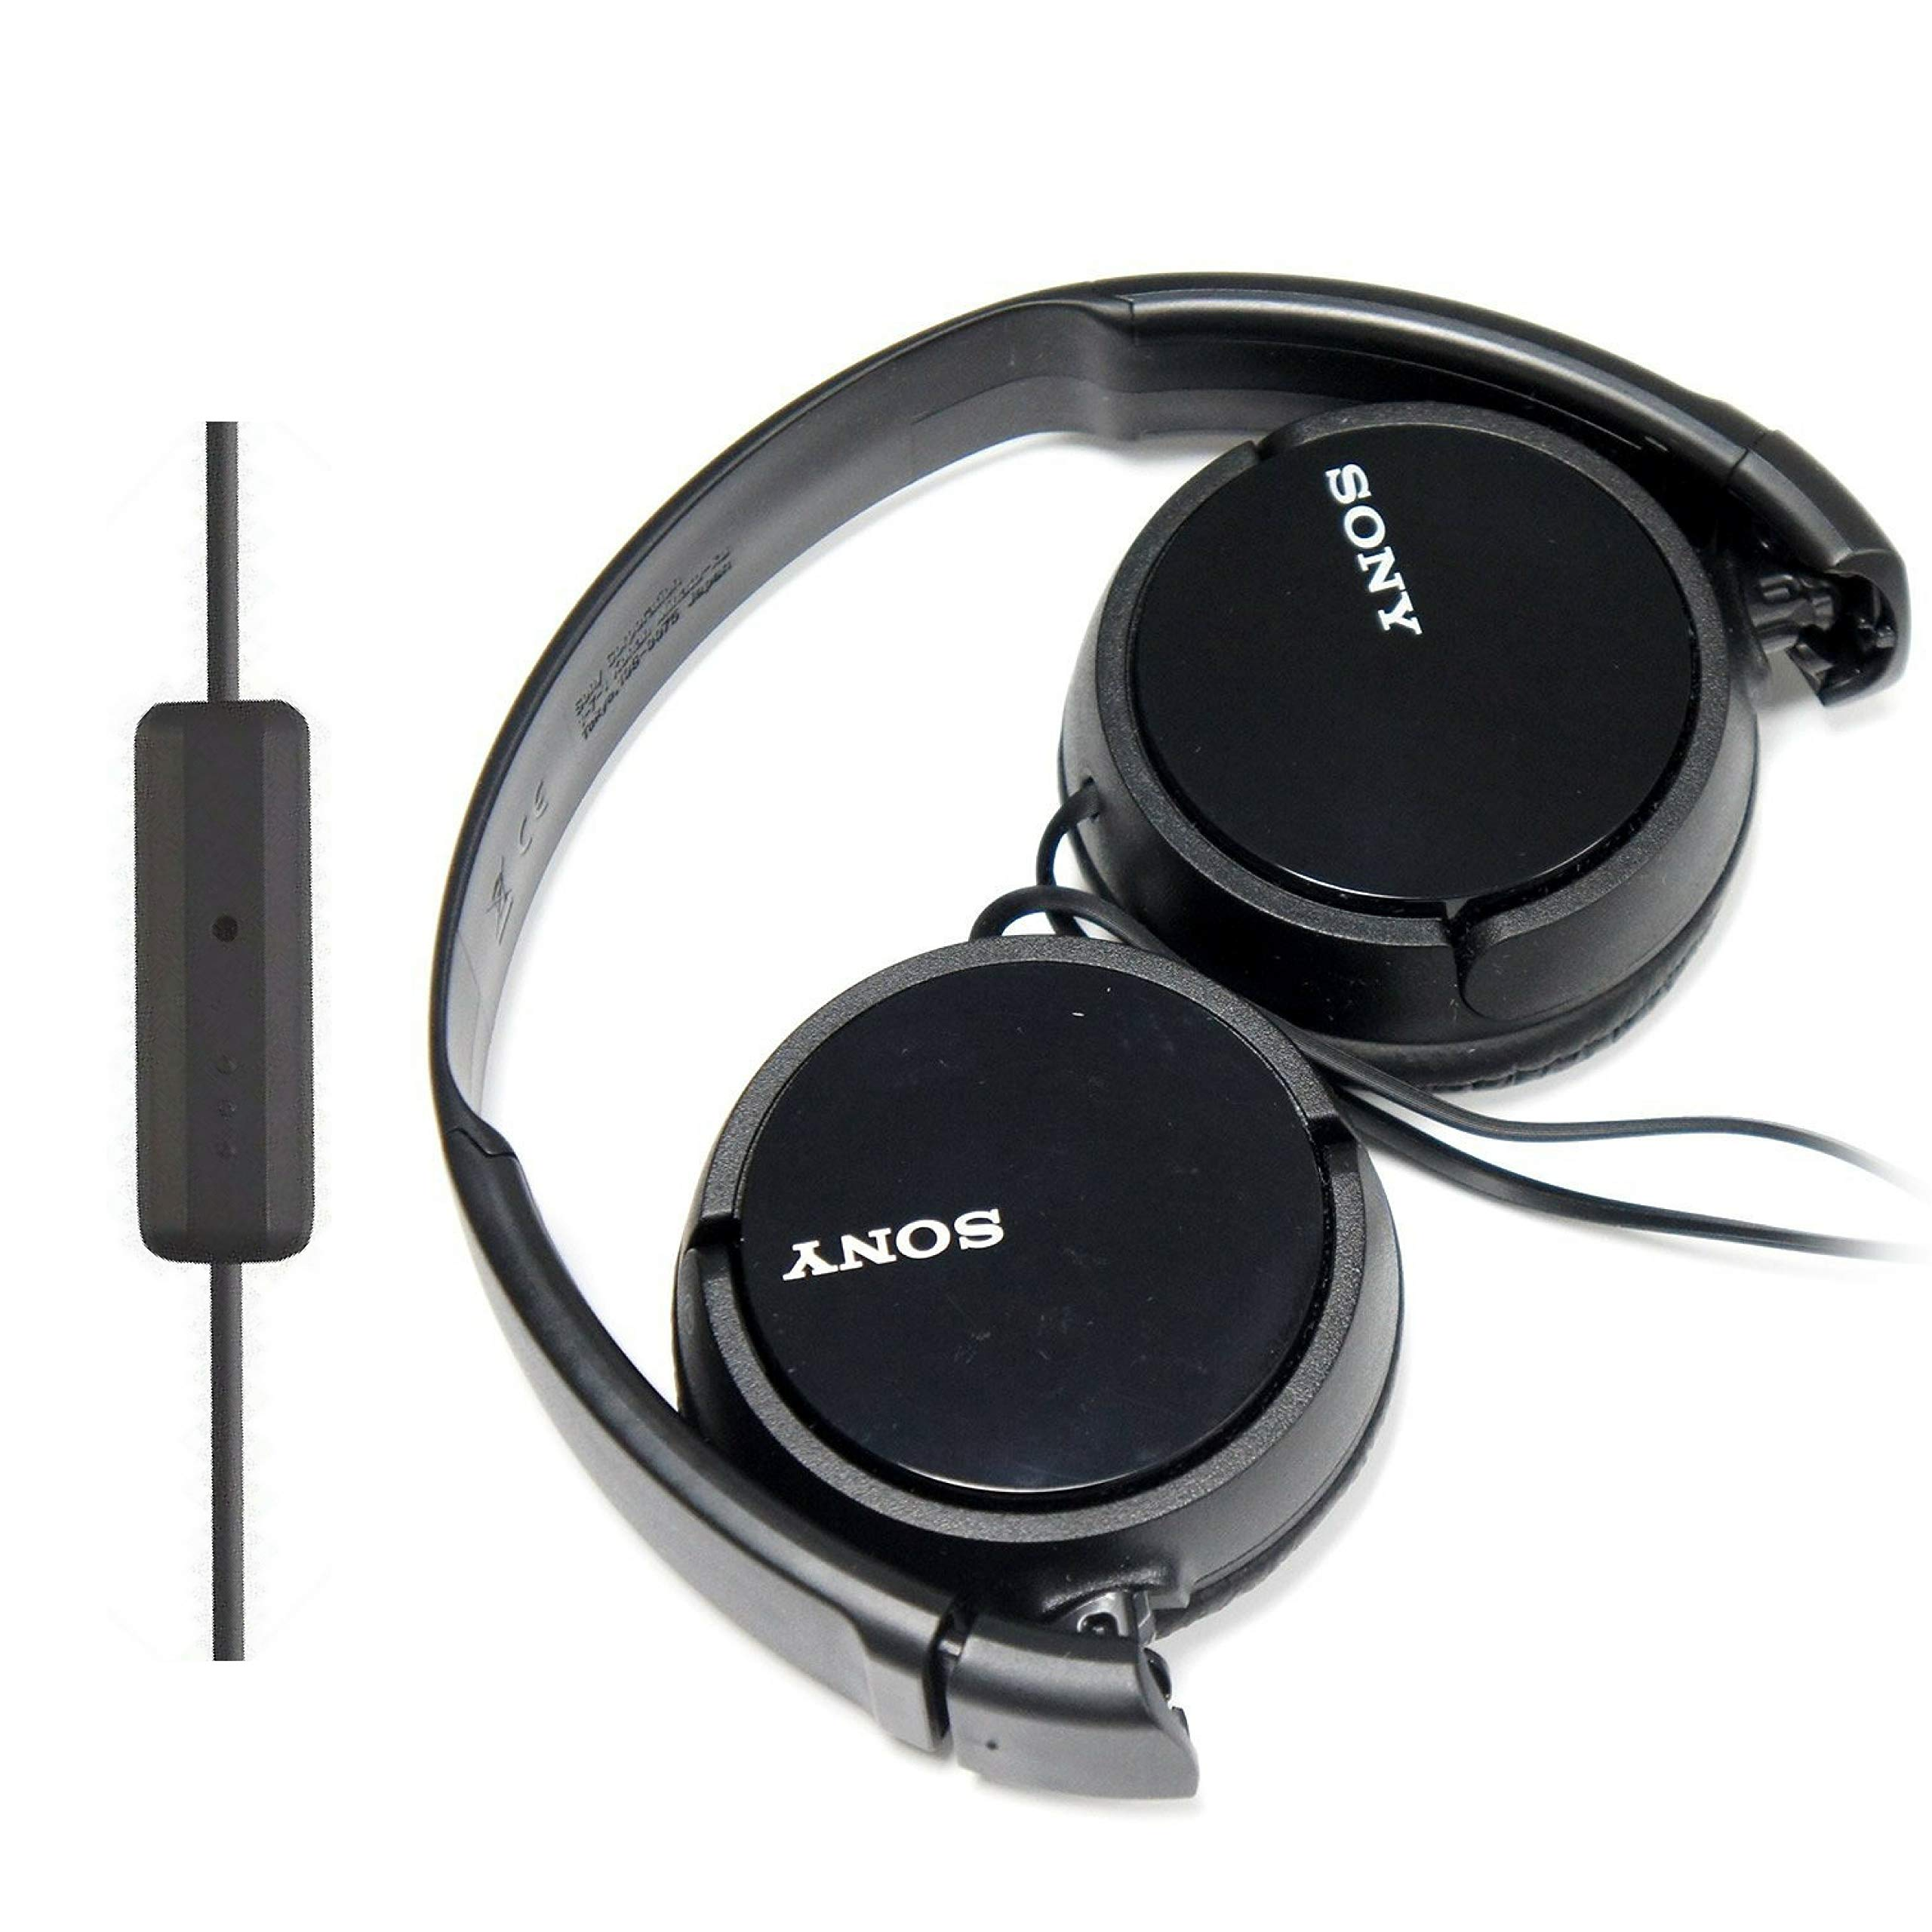 SONY Over Ear Best Stereo Extra Bass Portable Headphones Headset for Apple iPhone iPod/Samsung Galaxy / mp3 Player / 3.5mm Jack Plug Cell Phone with Mic (Dark Gray)